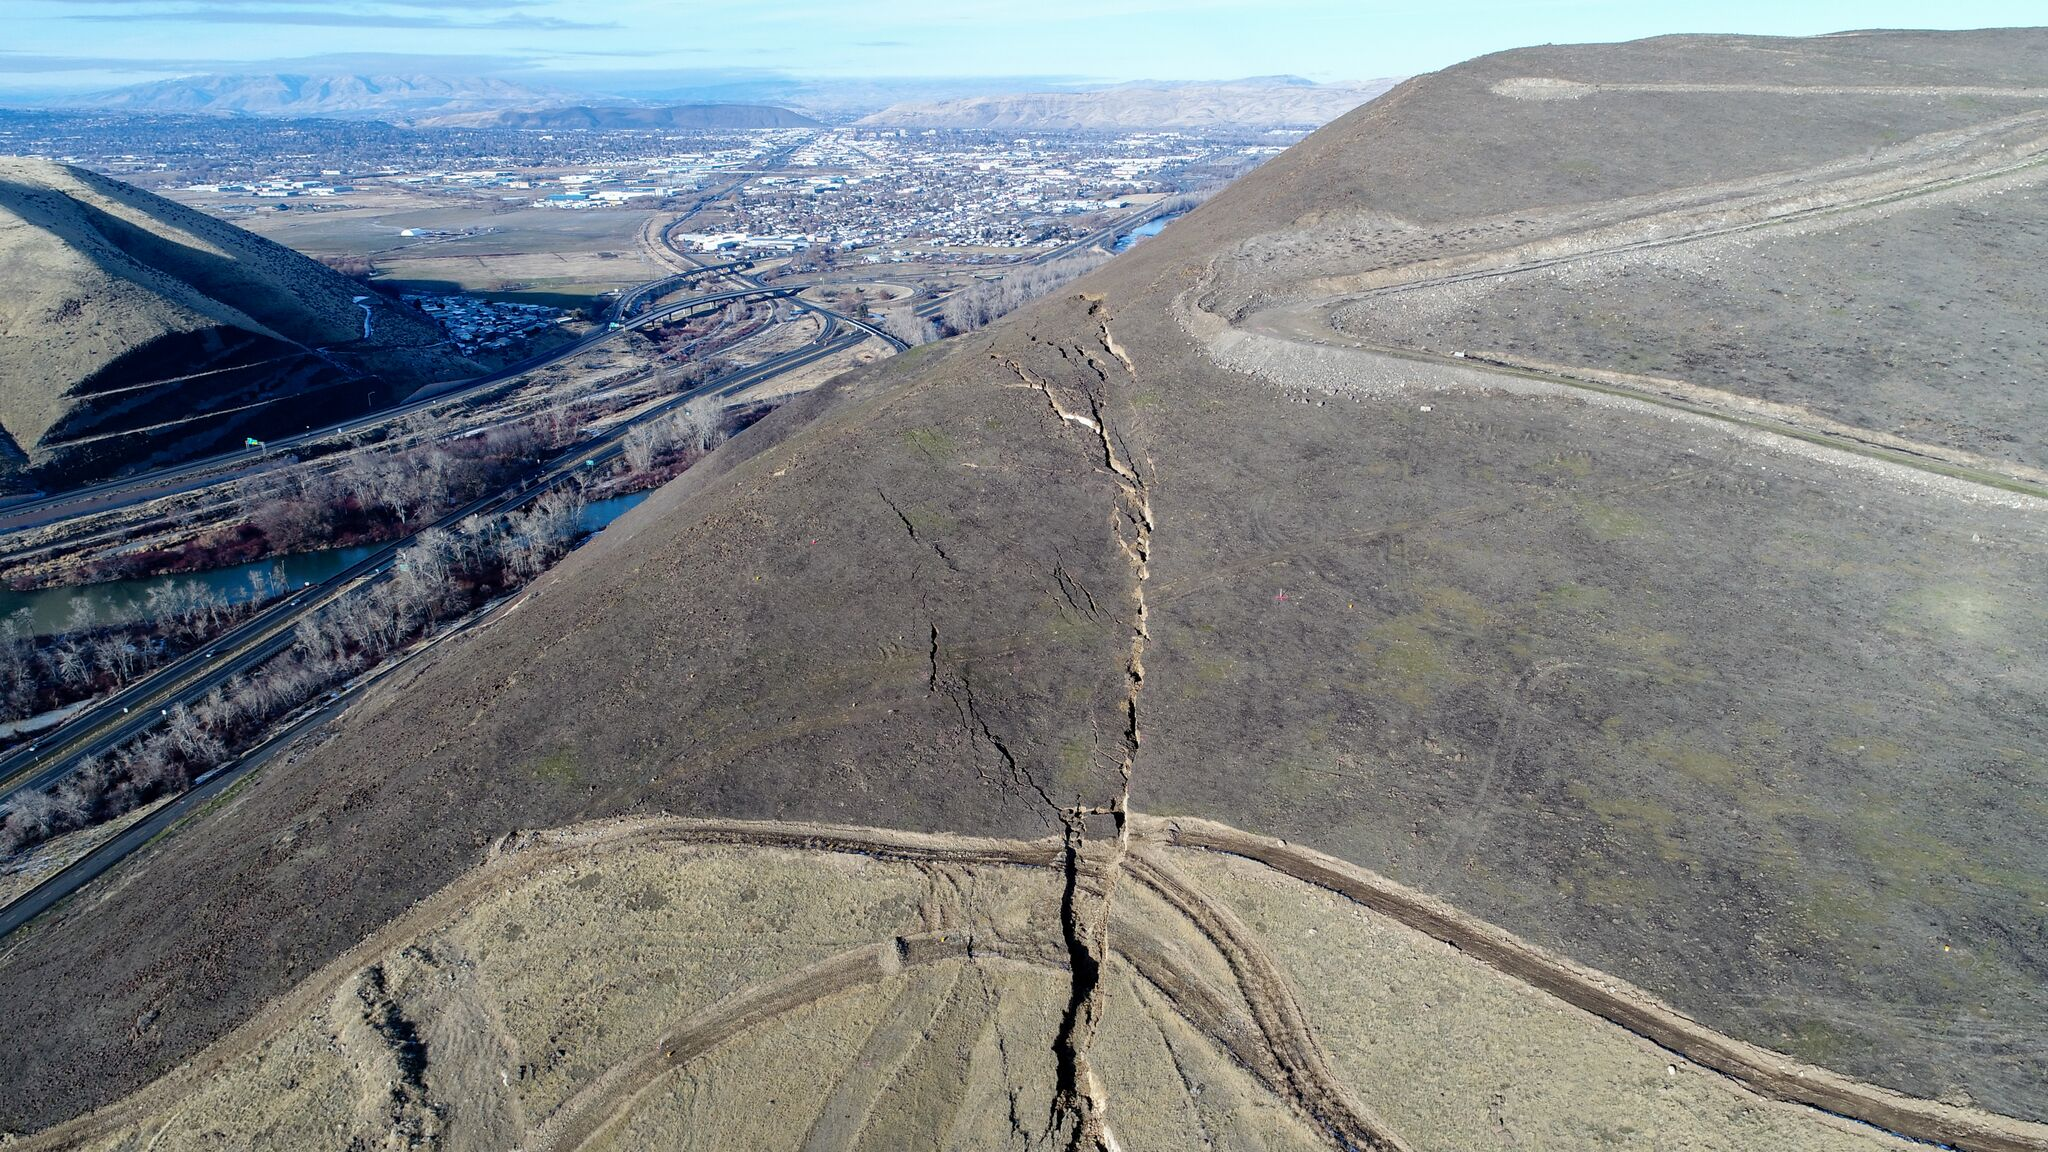 Rep. Newhouse urges for state of emergency declaration due to landslide